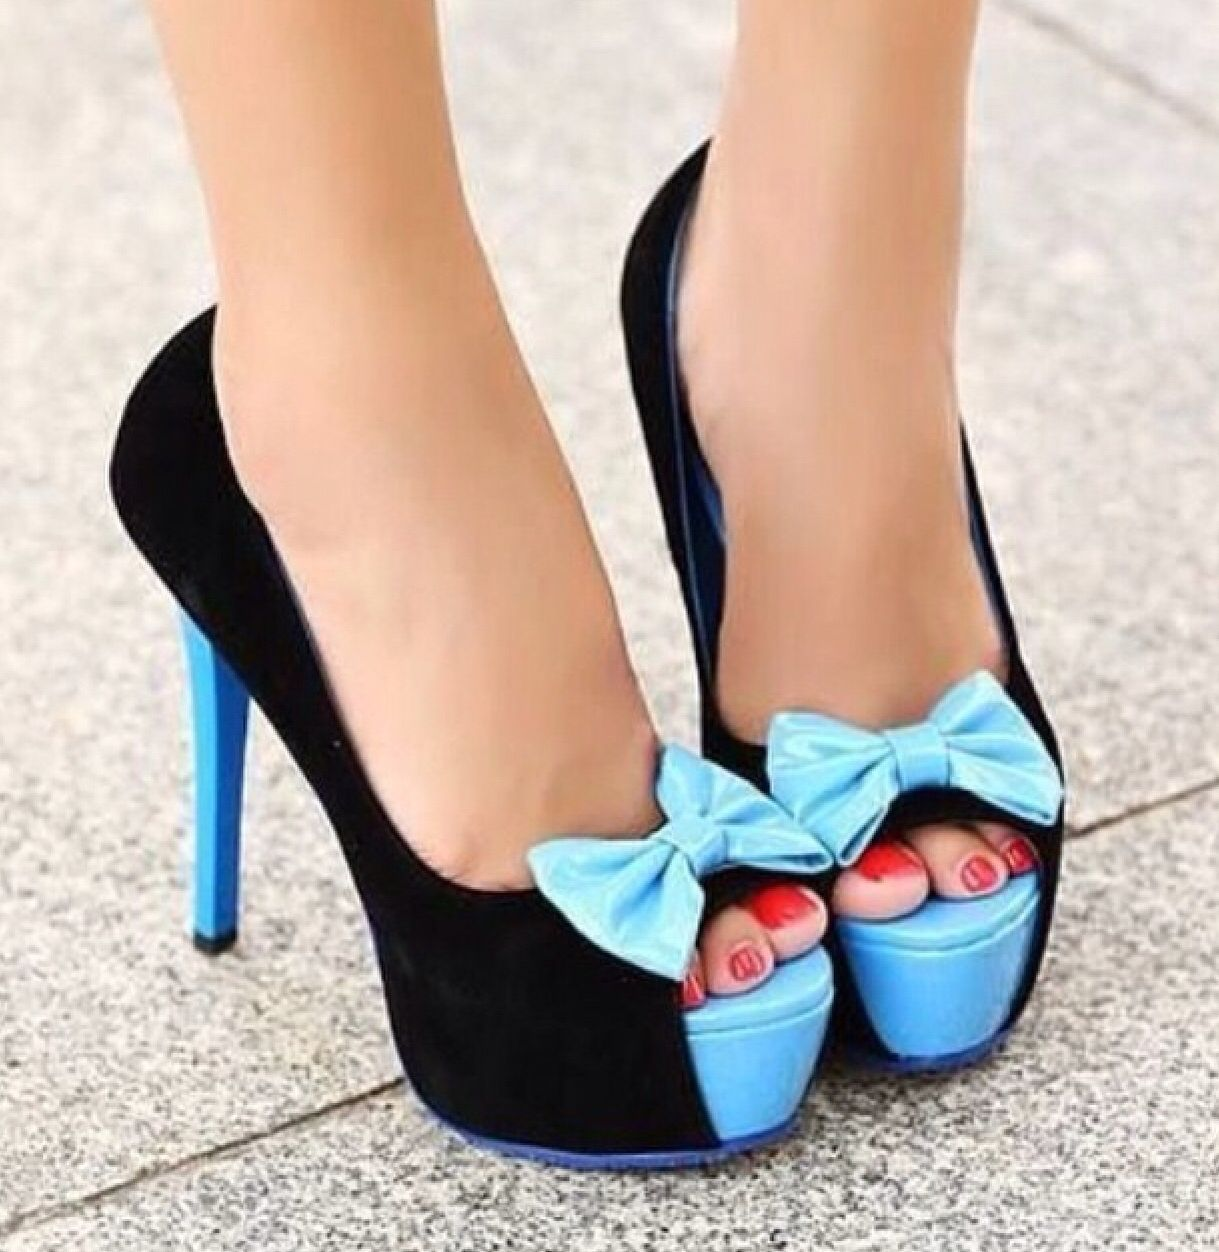 8a62d610af231 These shoes would be perfect for a formal event!! So cute!! | Shoes ...